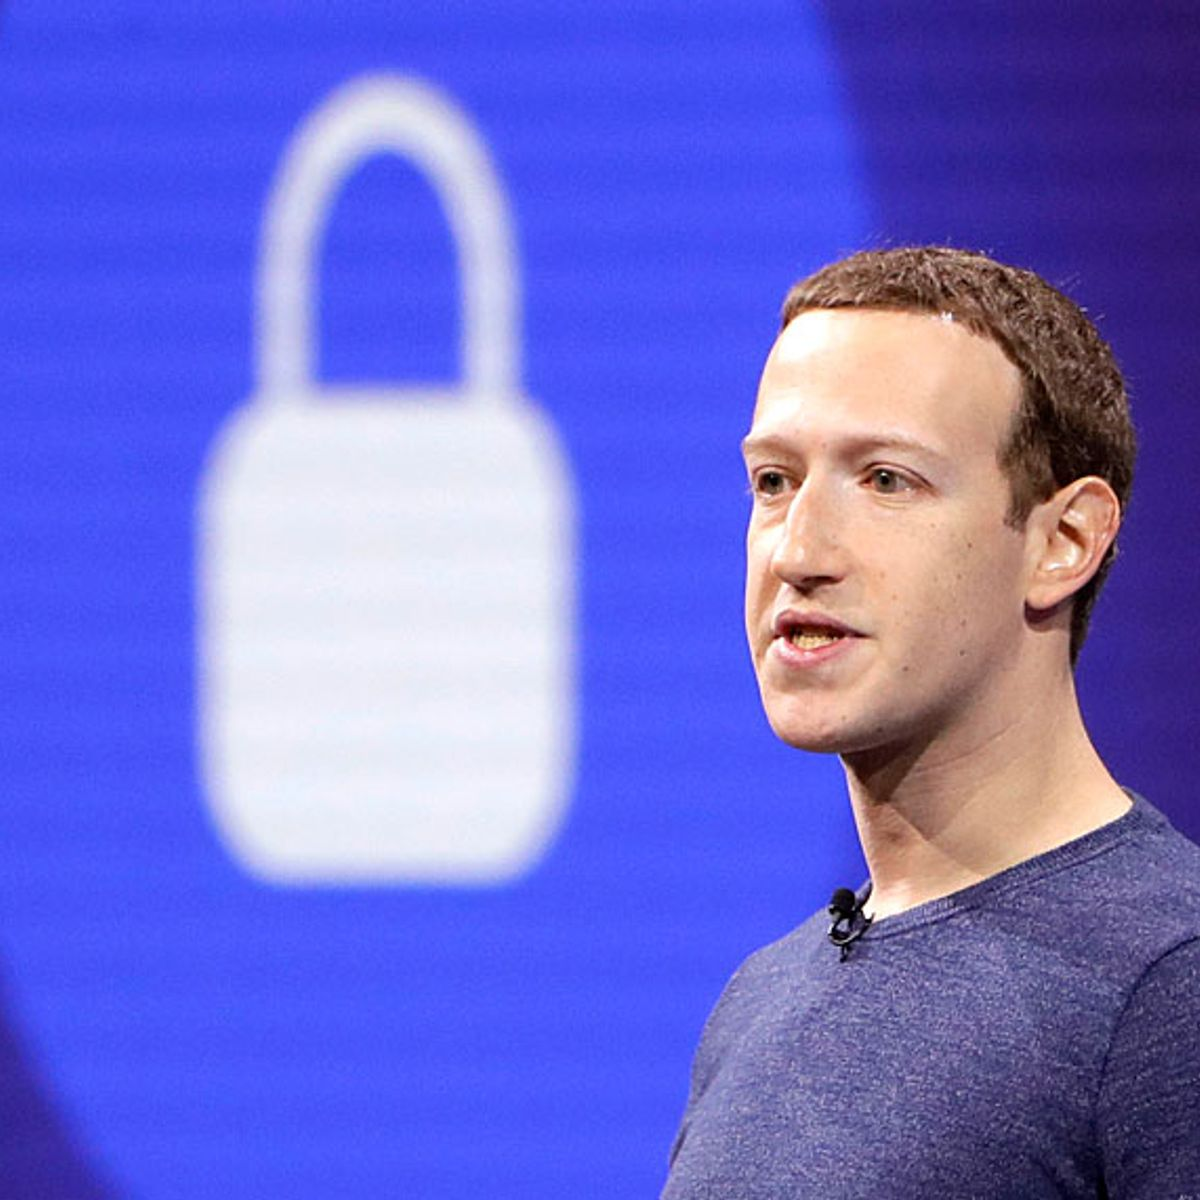 Bipartisan coalition of 40 state attorneys general to join Facebook antitrust probe: report